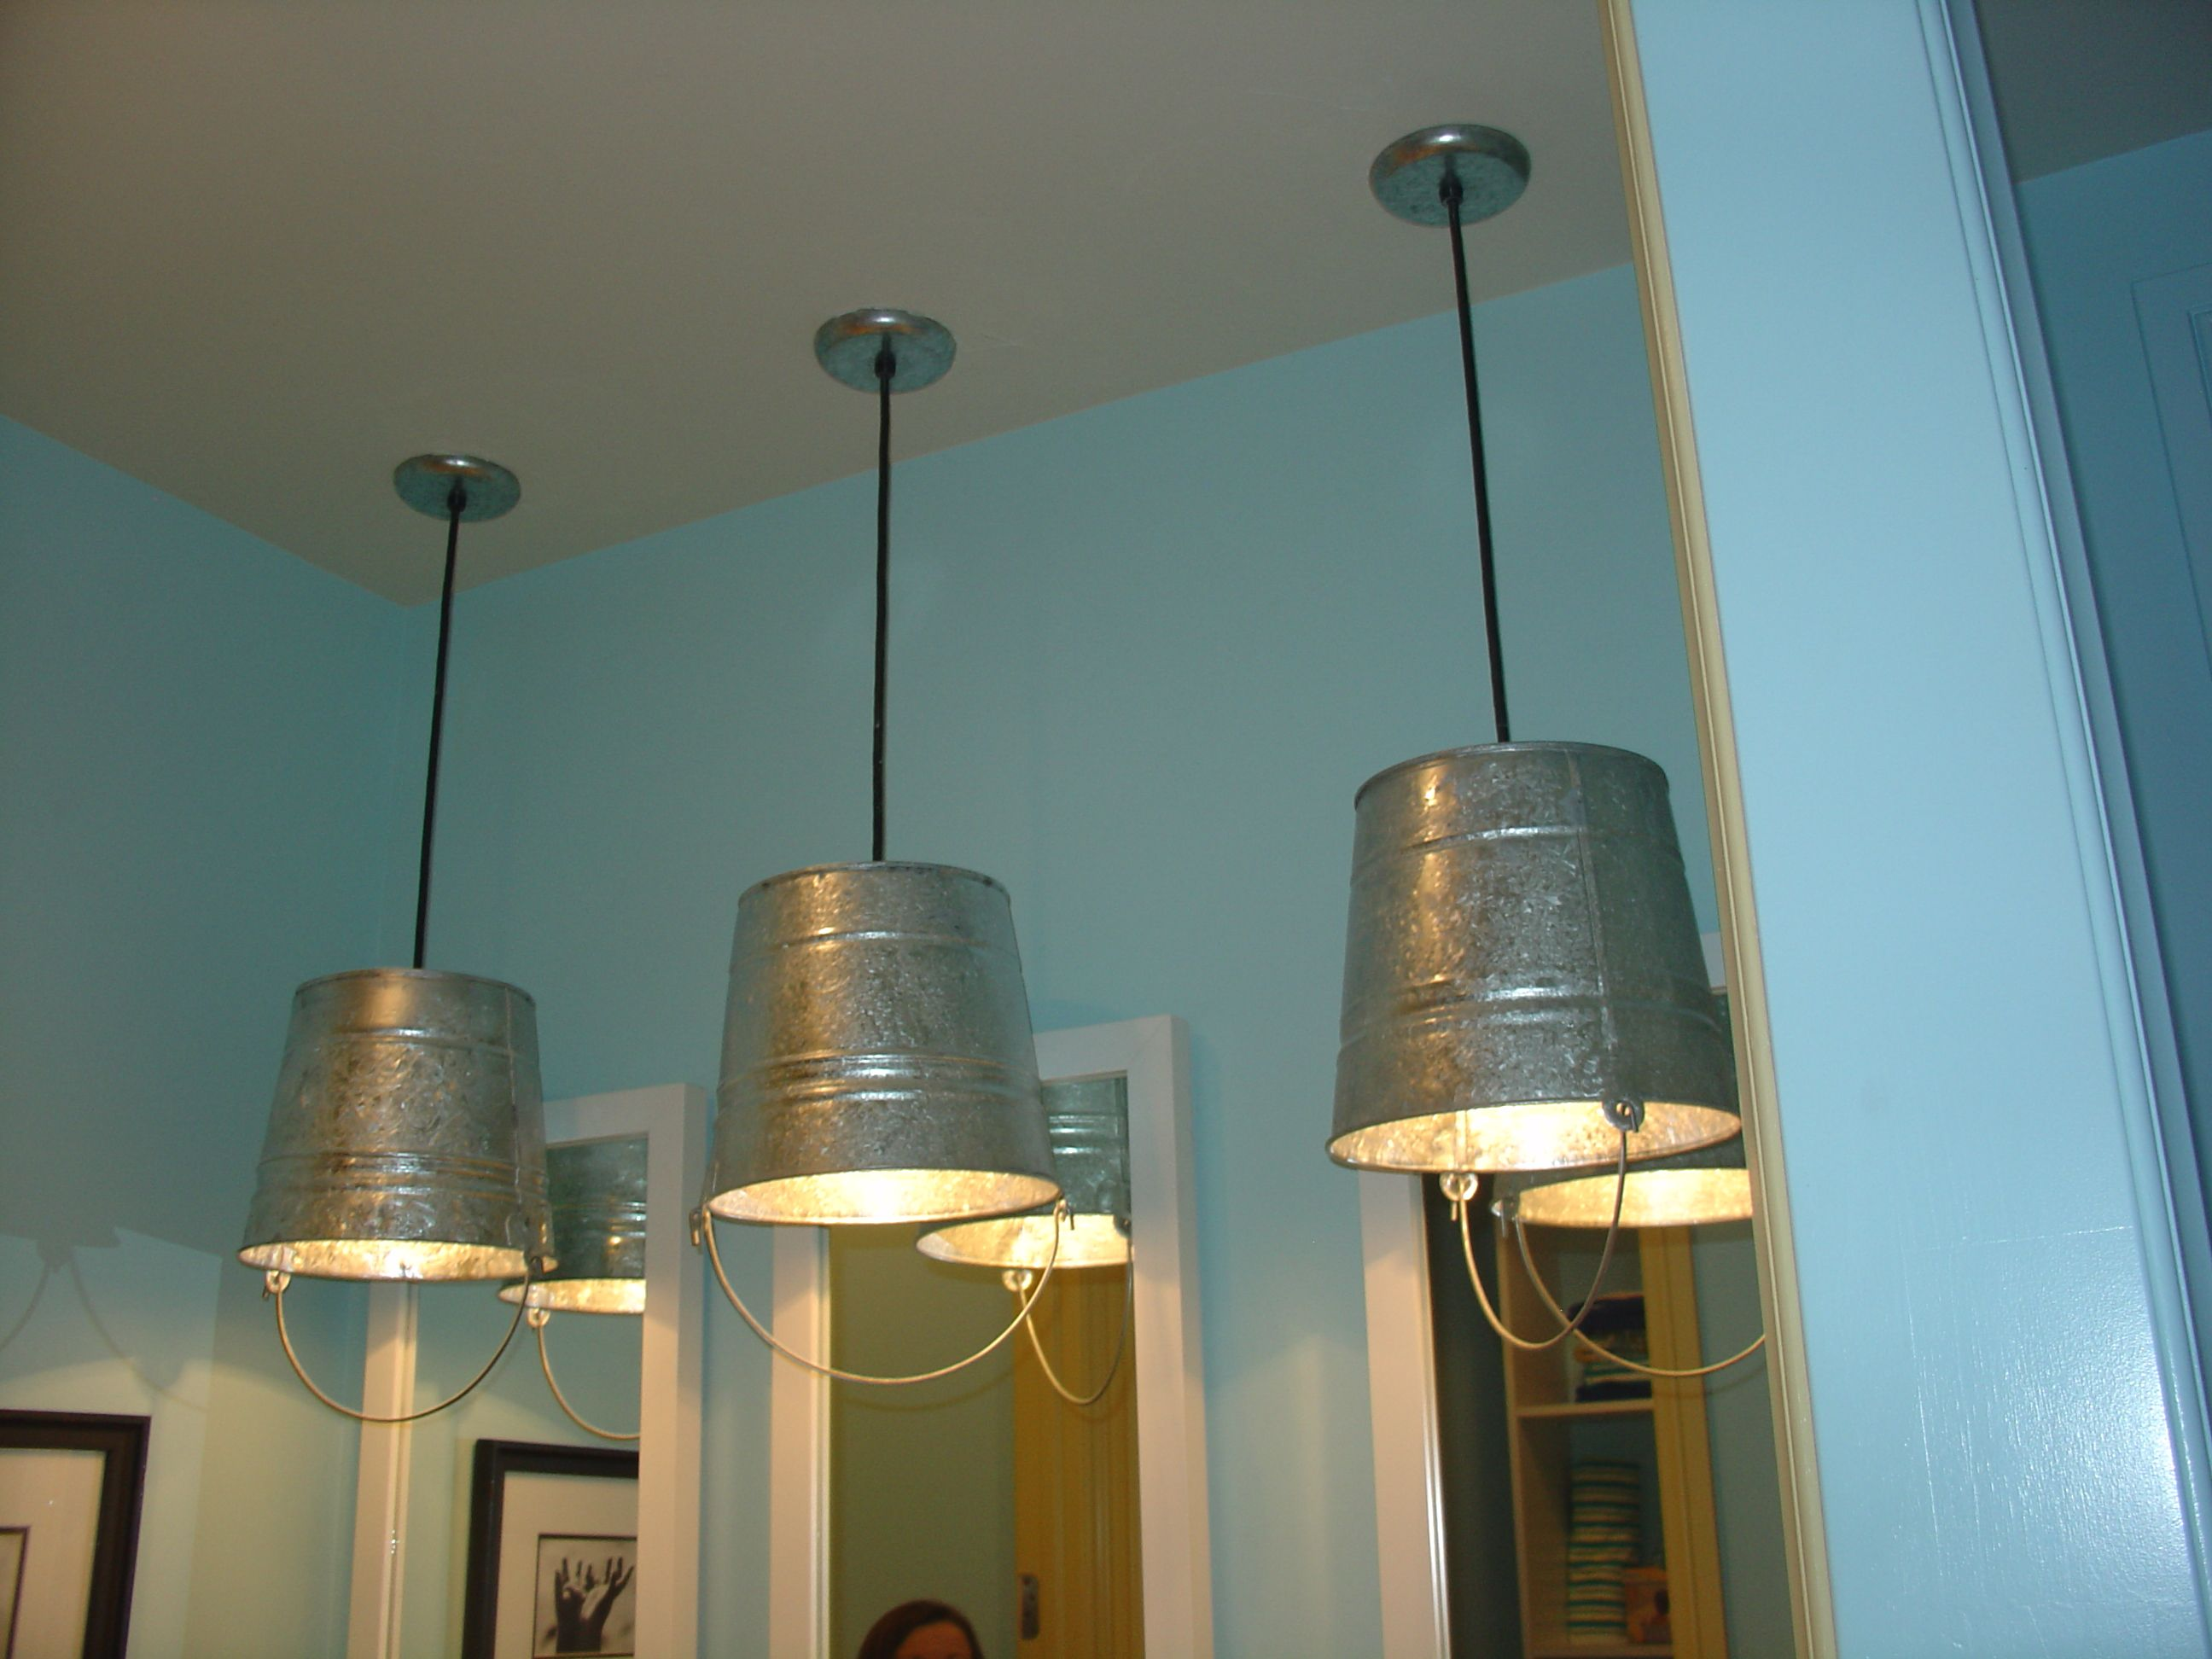 Fun Bucket Light Fixtures In Kids Bathroom Of Parade Of